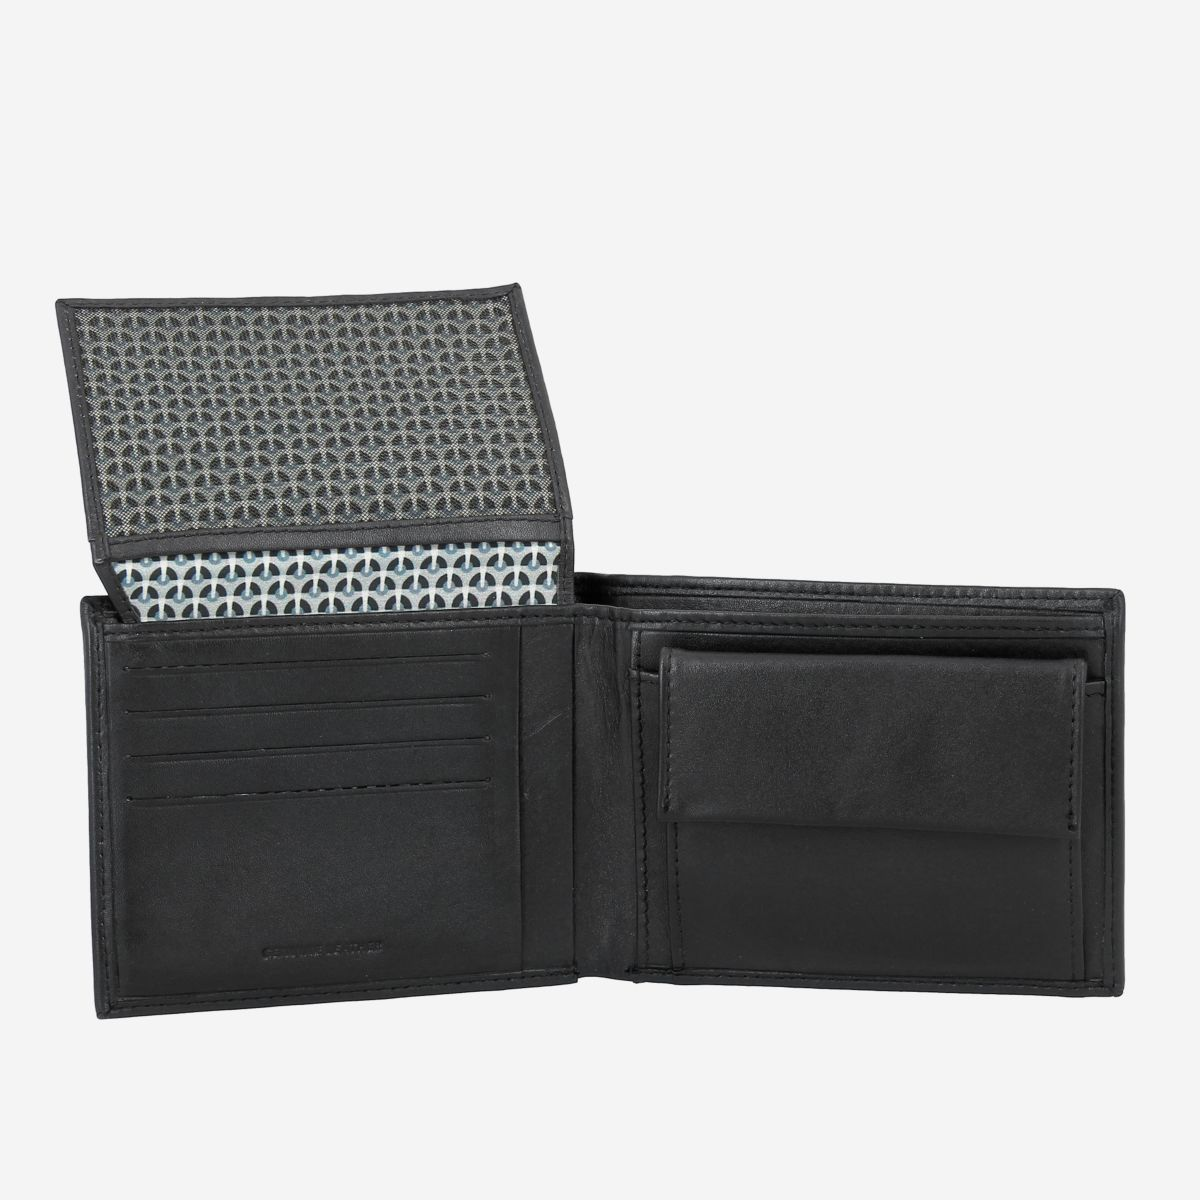 Elegant Mens Leather Wallet With Coin Coin Purse - Black